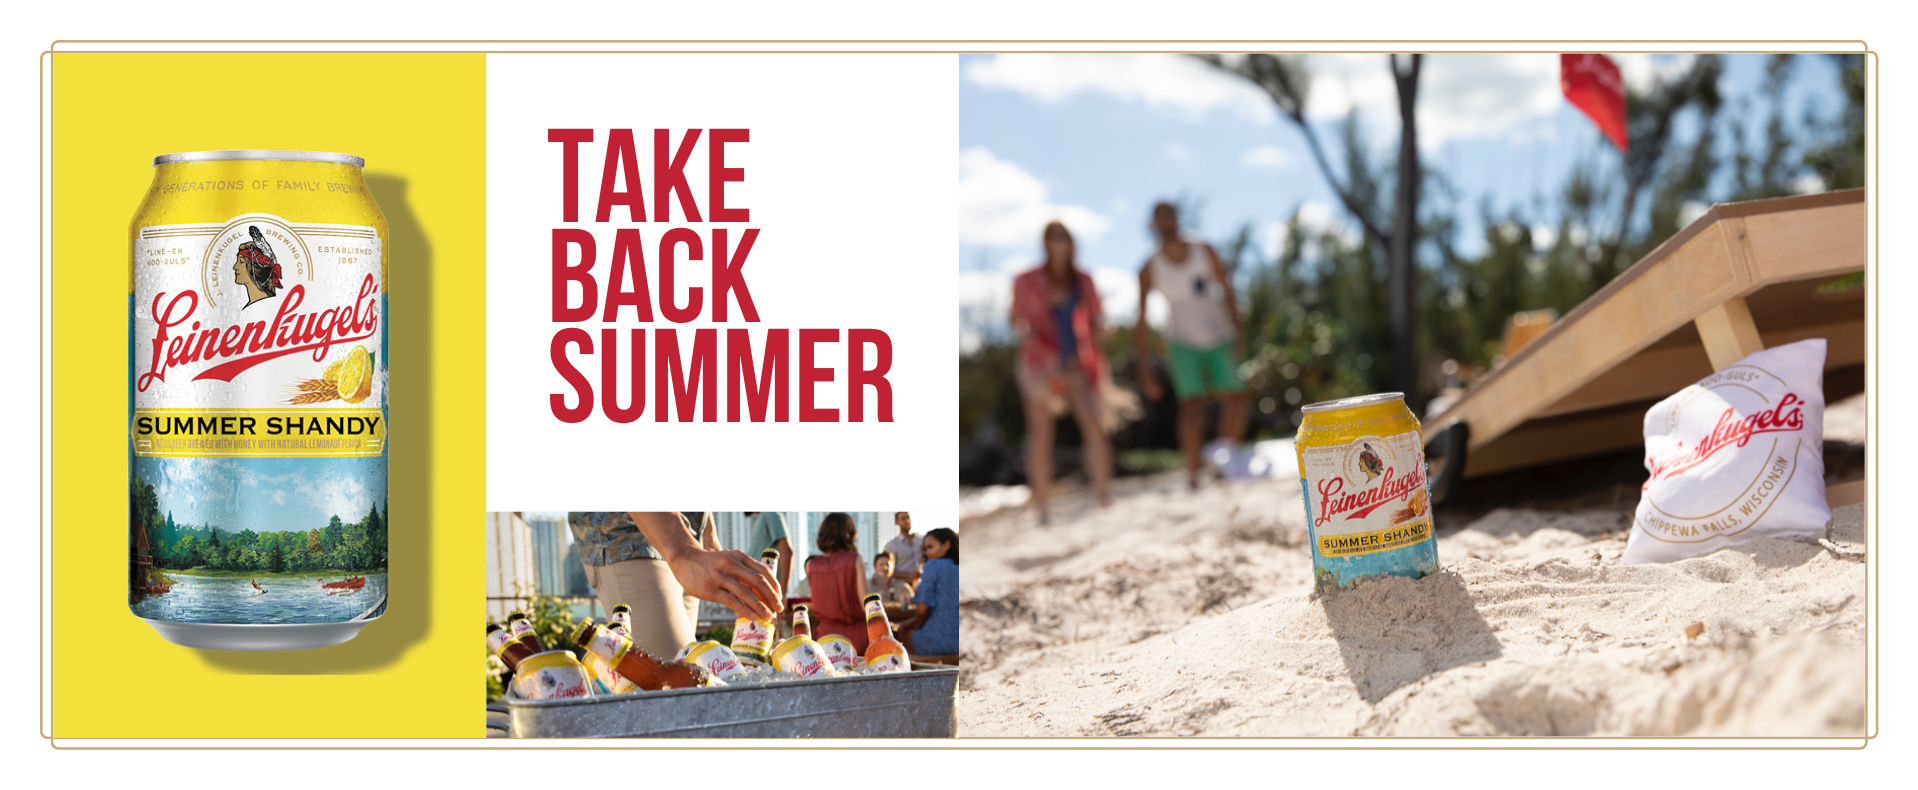 Take Back Summer Beach Image